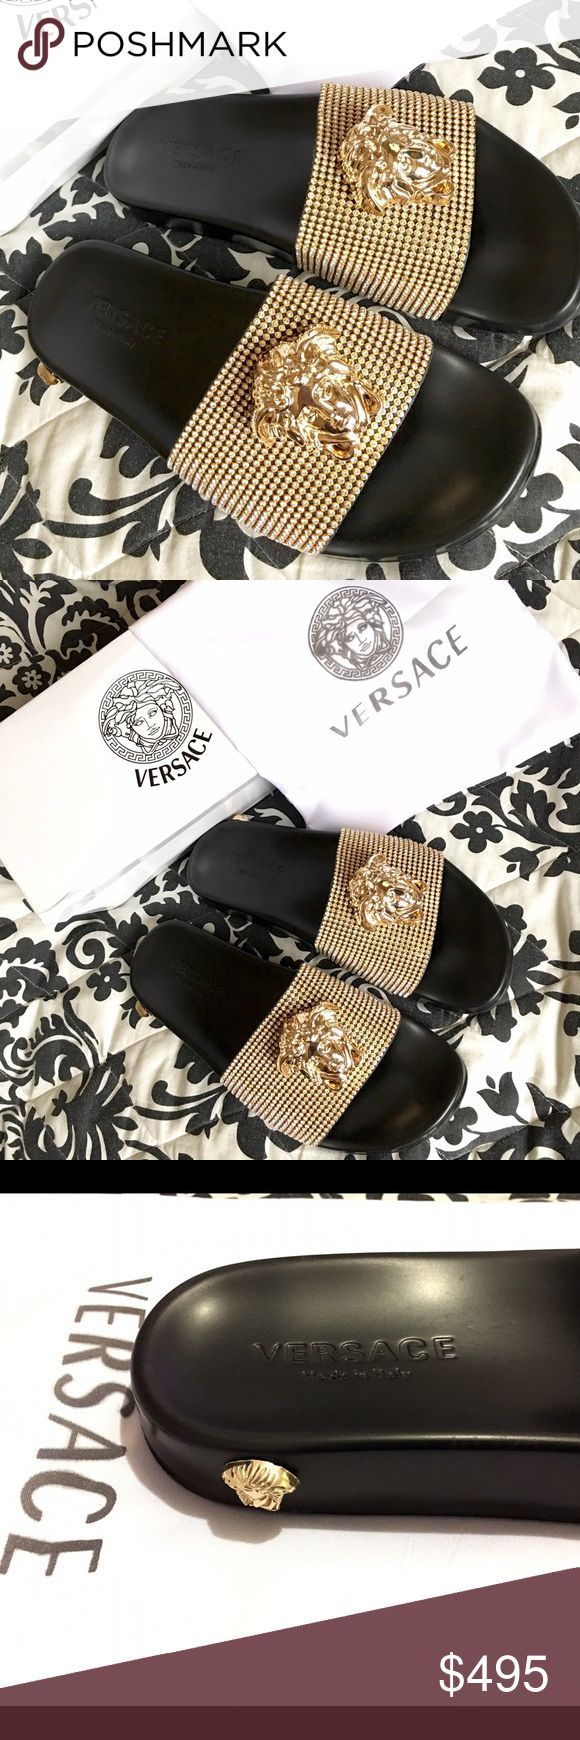 LUXURY VERSACE SLIDES!!! LUXURY VERSACE SLIDES!!! BRAND NEW!!! UNISEX....FOR MAN OR WOMAN!!! AVAILABLE IN SIZE.....10 & 10.5 USA!!! COMES WITH BOX AND DUST BAGS!!! LIMITED STOCK, ONLY WHILE SUPPLIES LAST!!! GREAT GIFT IDEA!!! CHECK MY LISTINGS FOR OTHER GREAT ITEMS!!! Ignore: Versace medusa flip flop flops slippers sandals slides palazzo open toe sandal slipper Versace Shoes Slippers